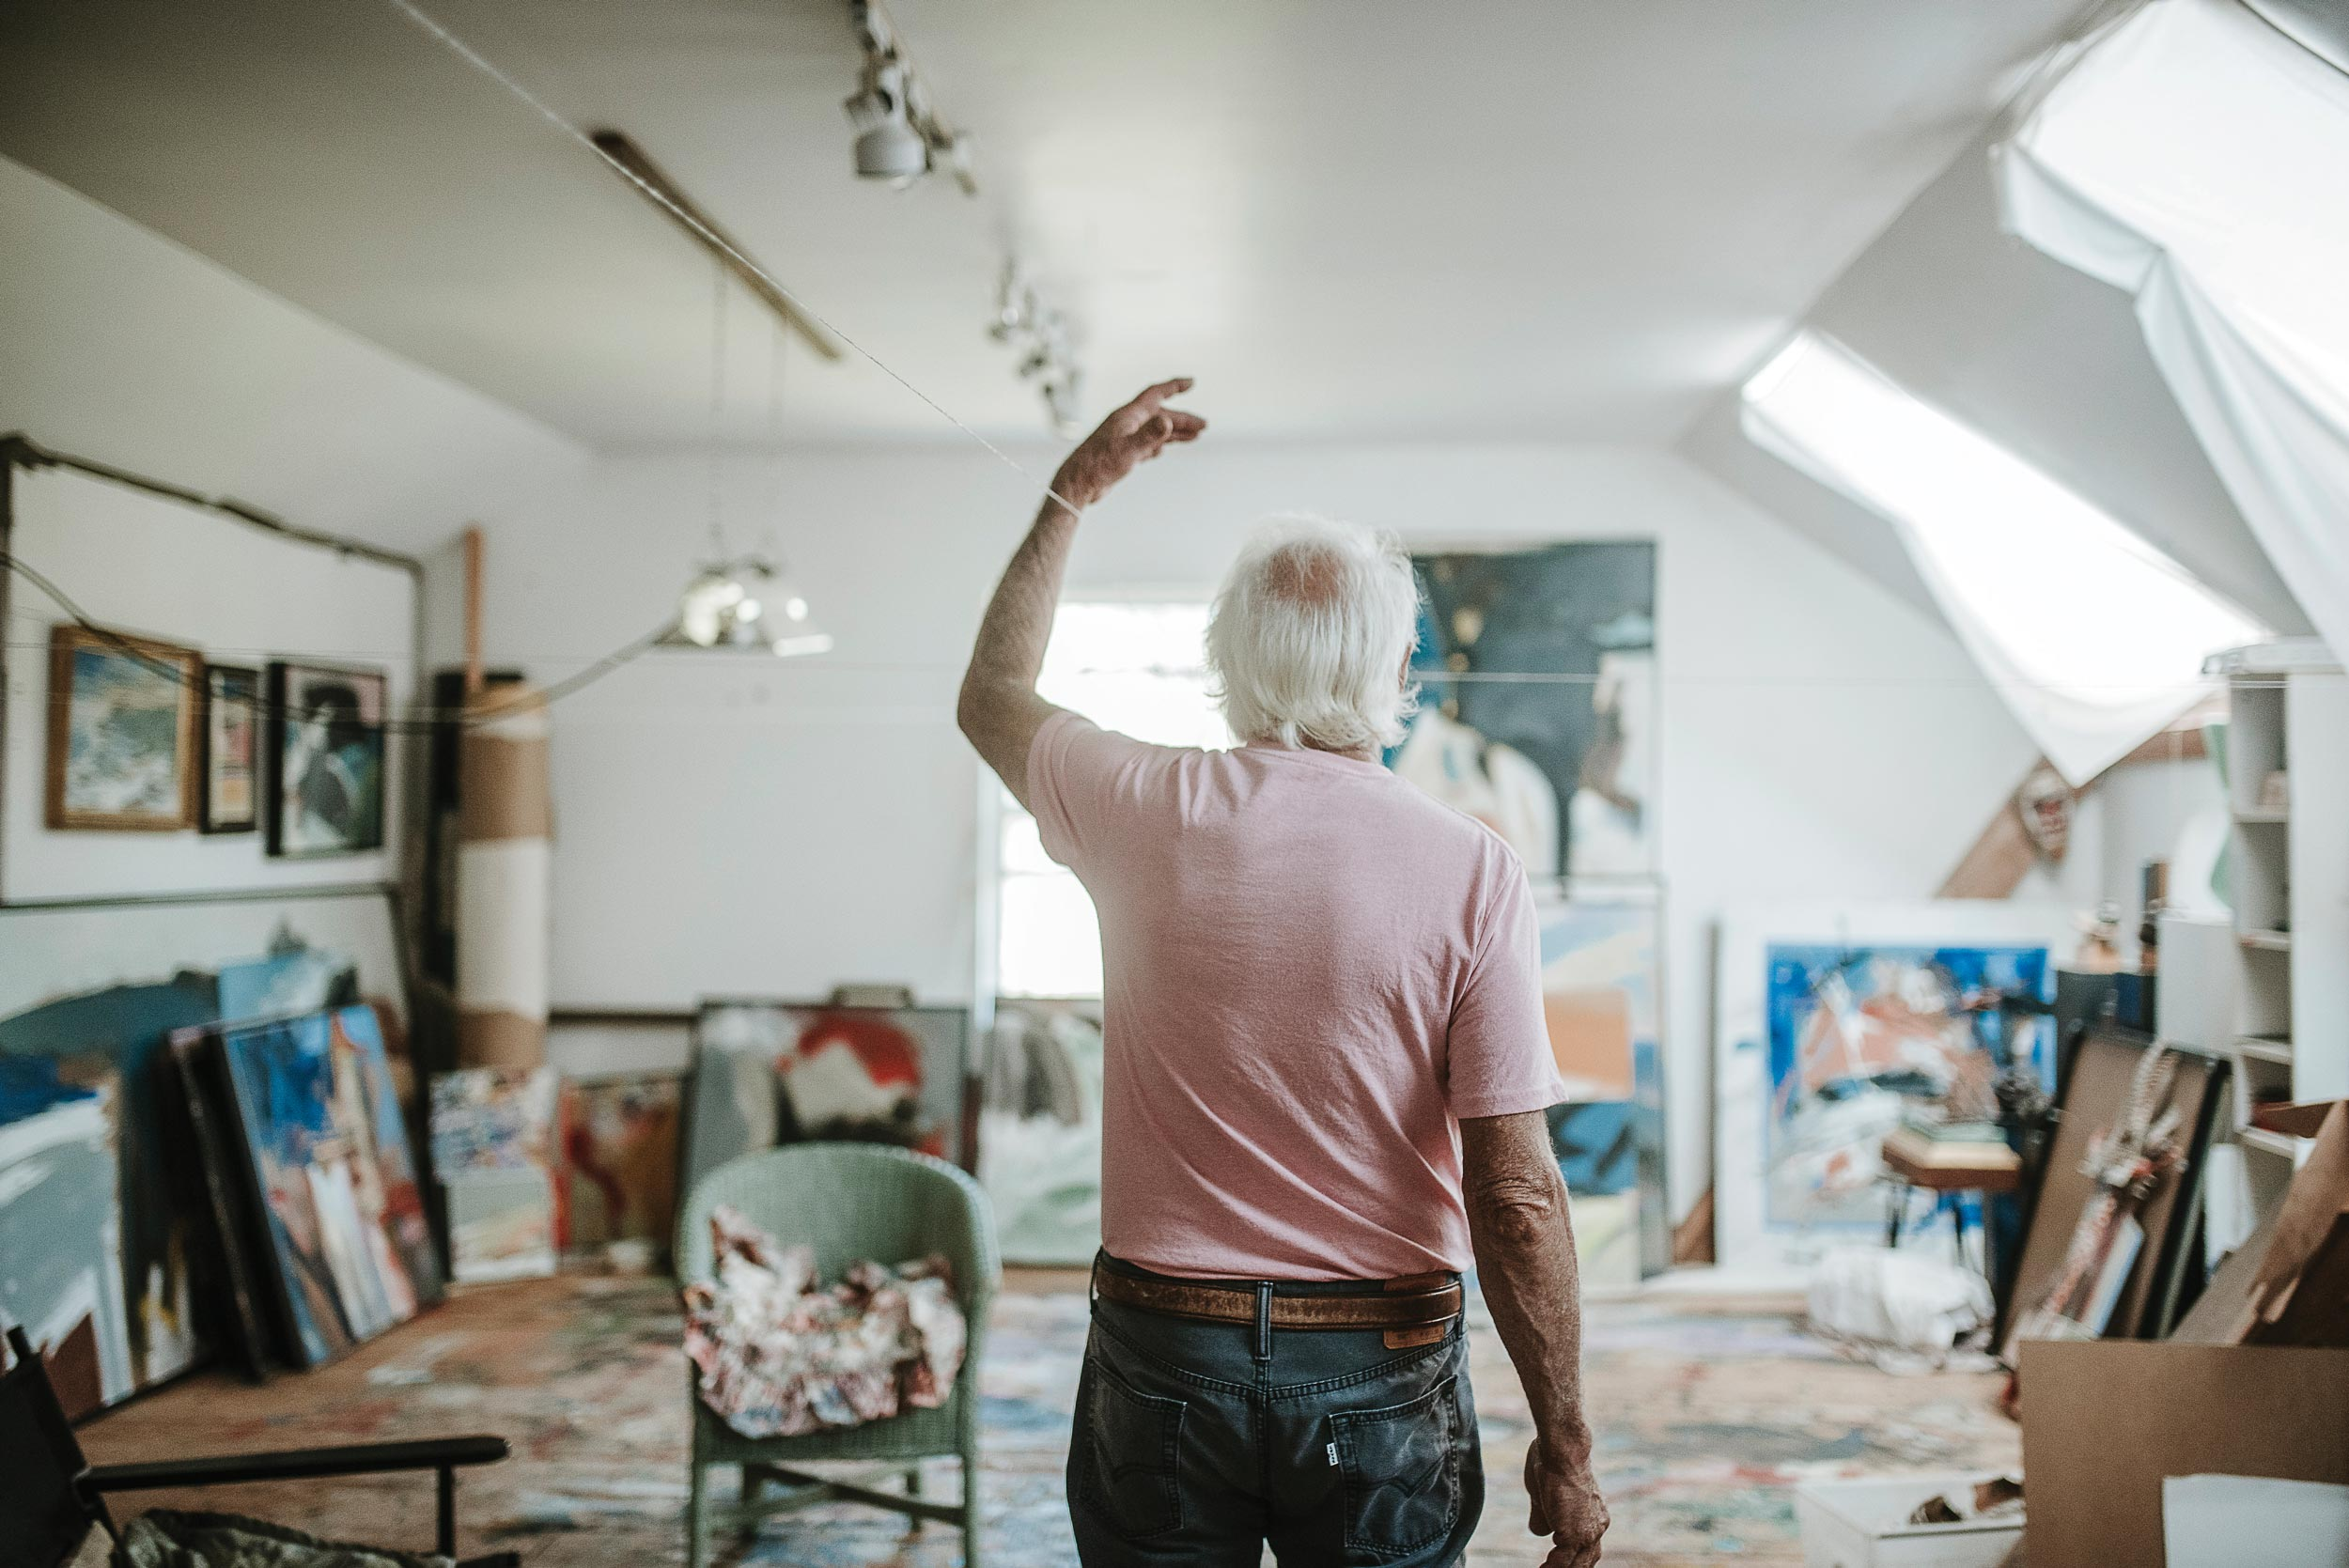 Denis uses string stretched across the length of his studio to guide and orient himself. The studio is lined with his completed paintings as well as Denis's found-art sculptures and other inspiring keepsakes he has gathered over the years.